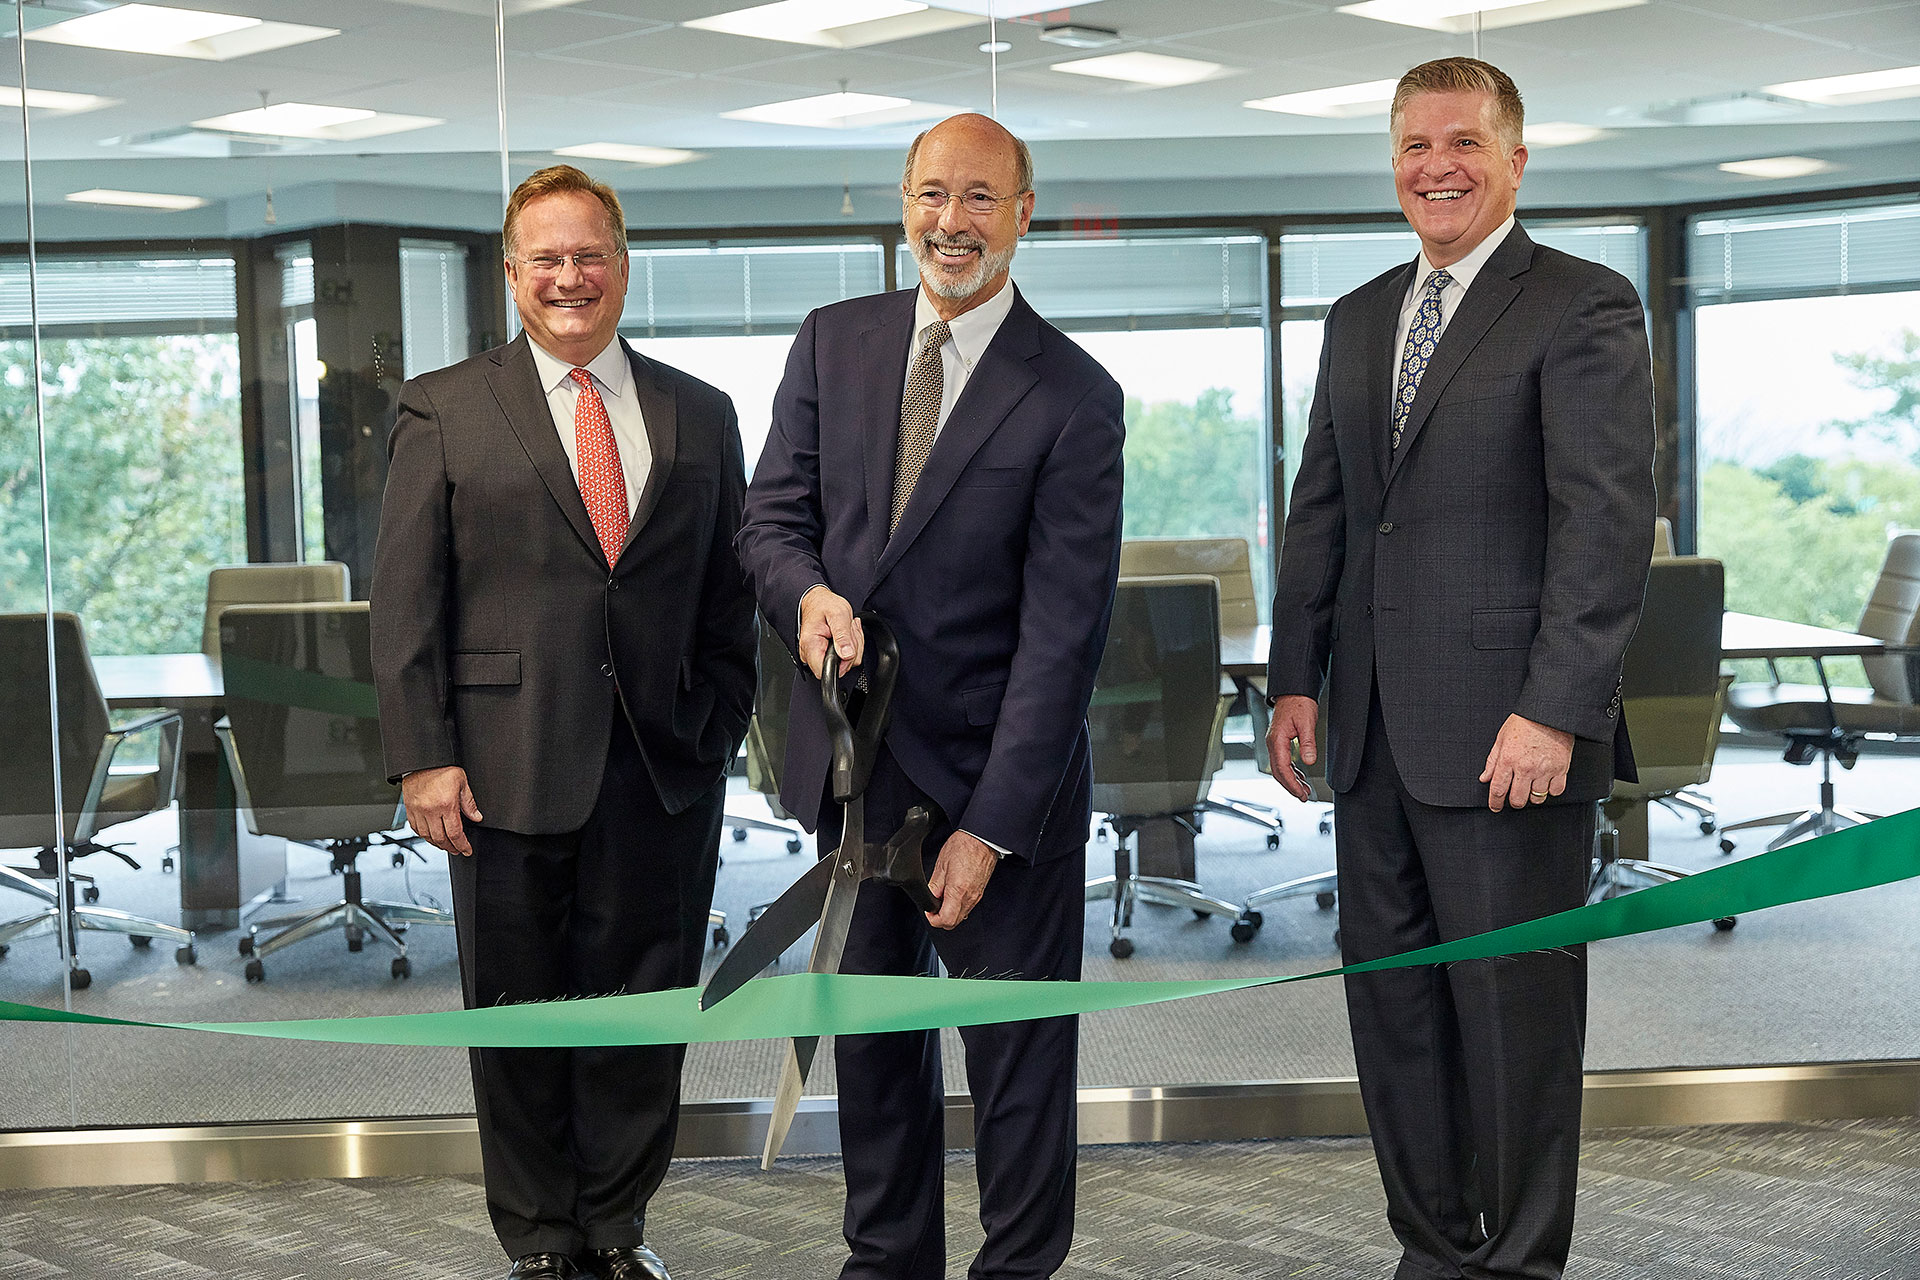 Harmony Biosciences, LLC welcomes Pennsylvania Governor Tom Wolf to cut the ribbon at the company's official opening of its new headquarters in Plymouth Meeting, Pennsylvania. Pictured here (left to right) are Chris Molineaux, President and CEO of Life Sciences PA, Governor Wolf and John C. Jacobs, President and CEO of Harmony Biosciences